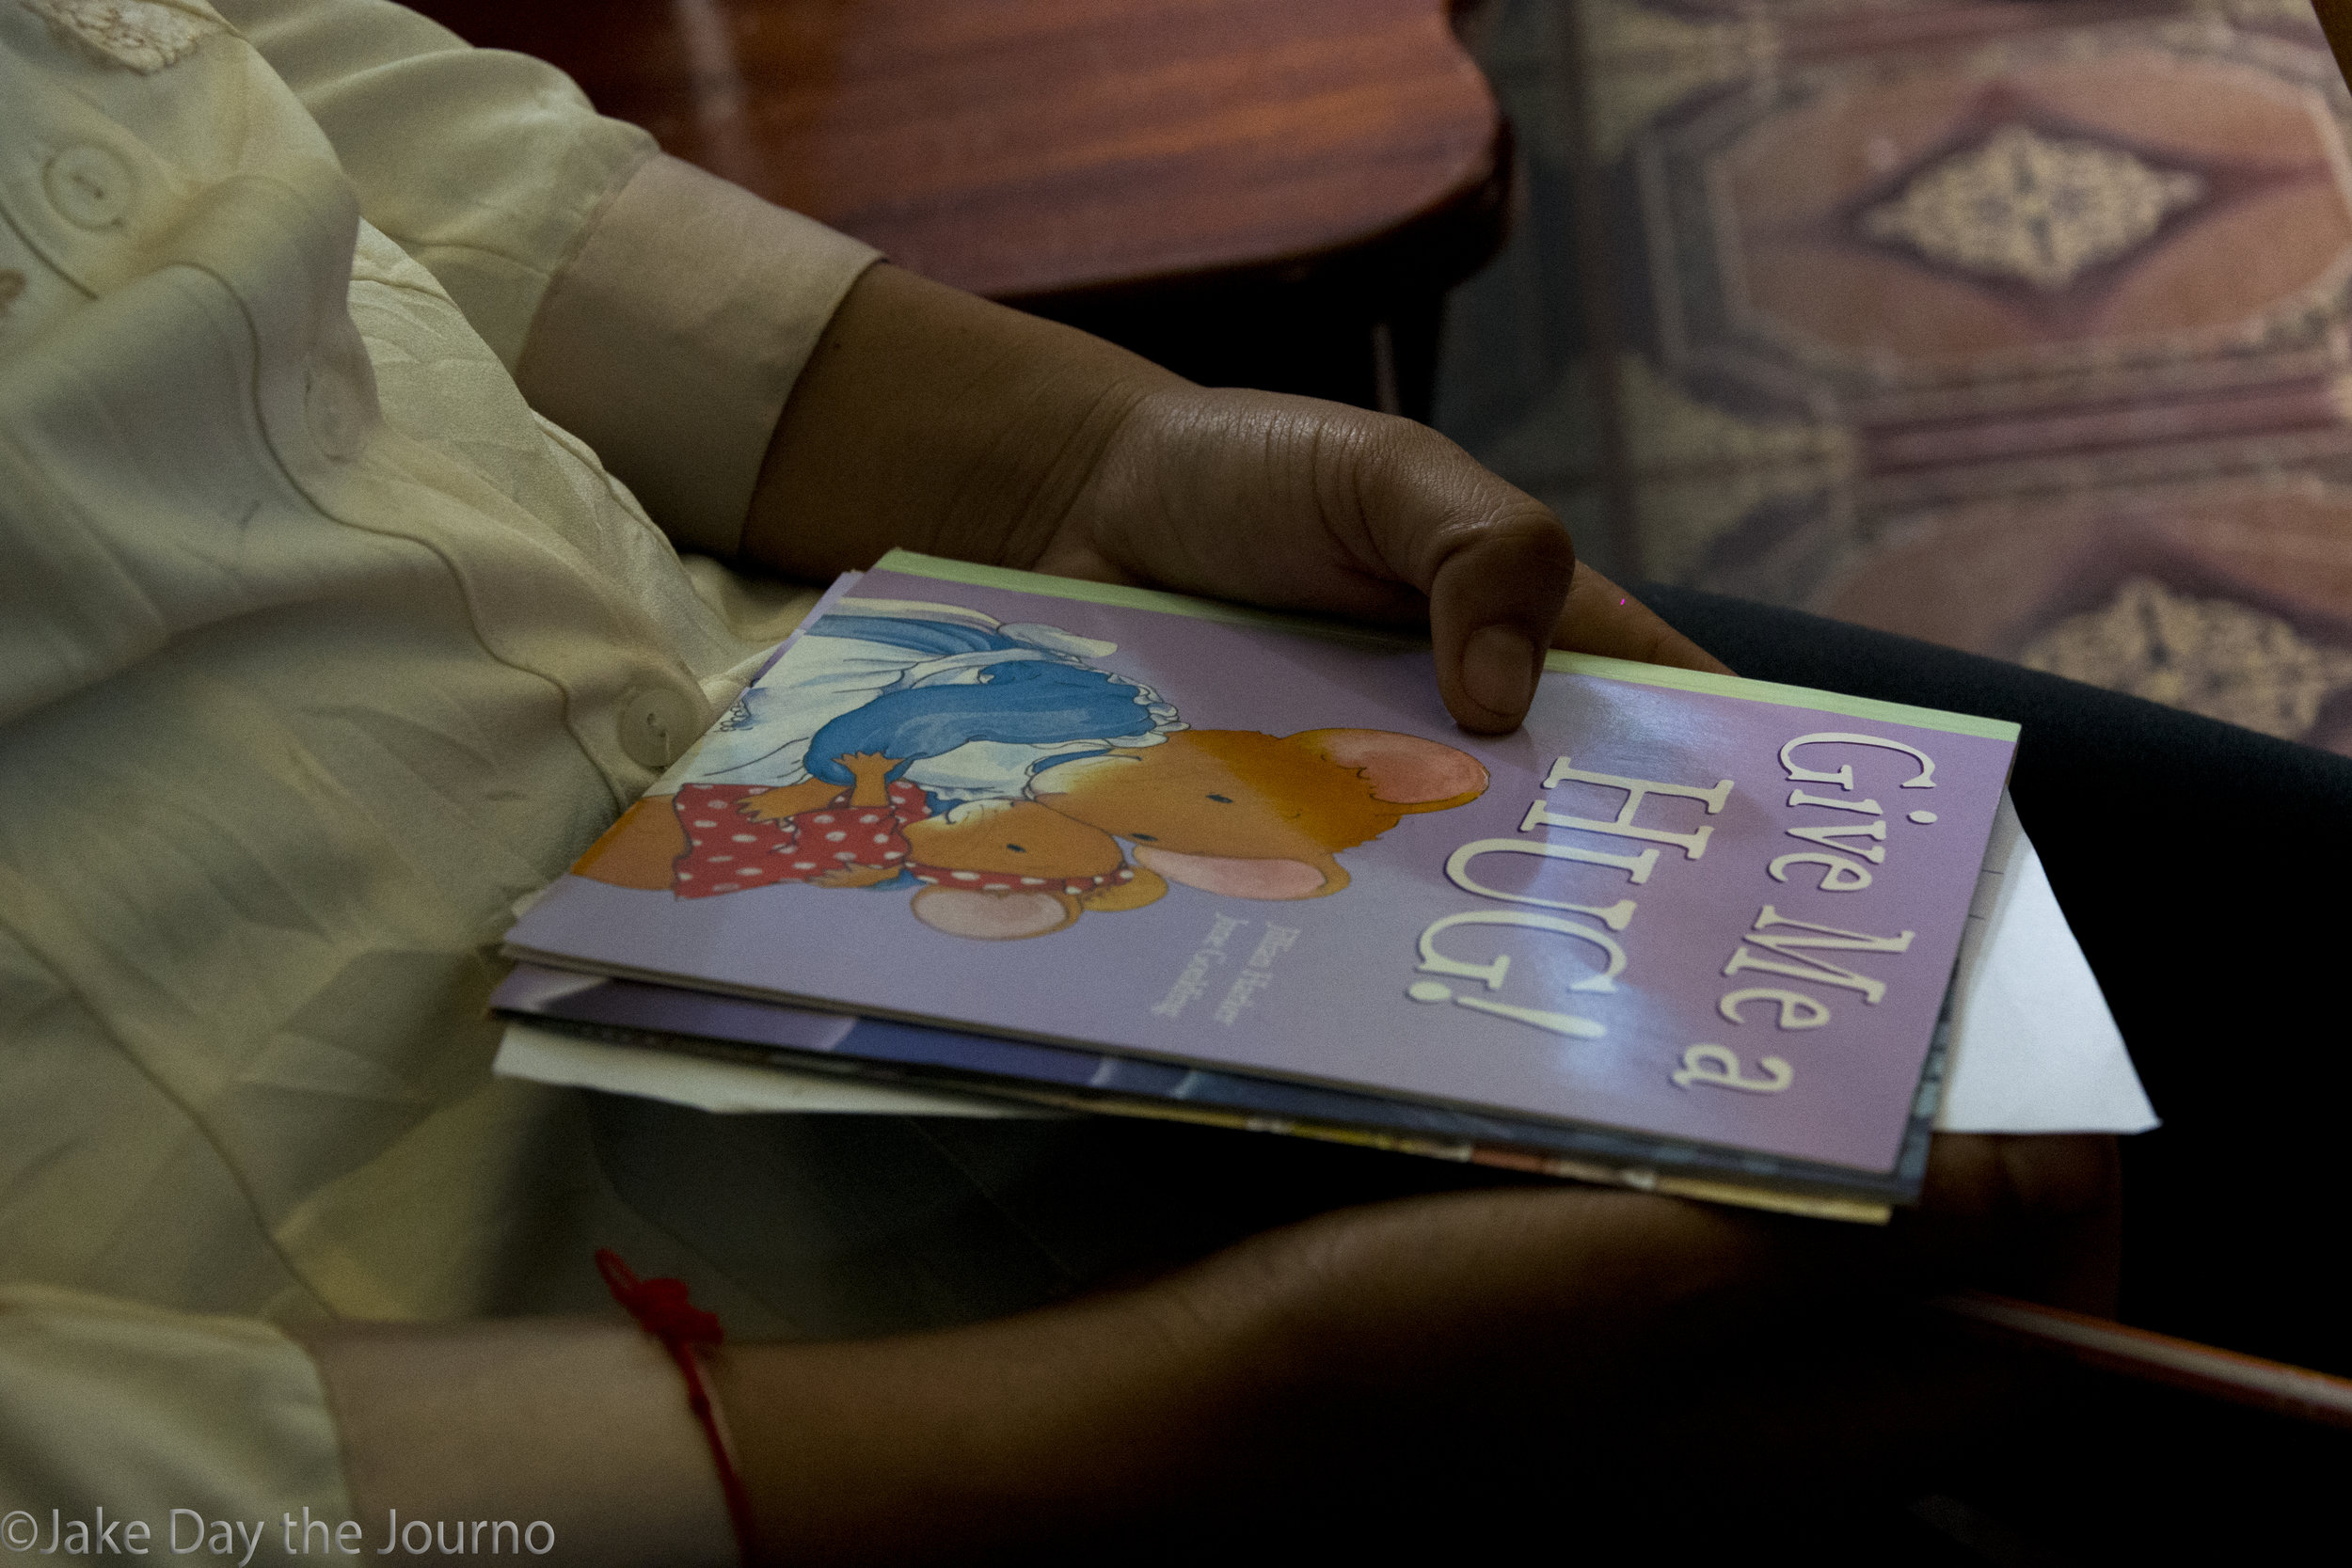 Librarian Sray Lam, 28, tentatively holds a childrens book at Savong's School, Don Teav Village, on 24/01/18 by Jake Day.